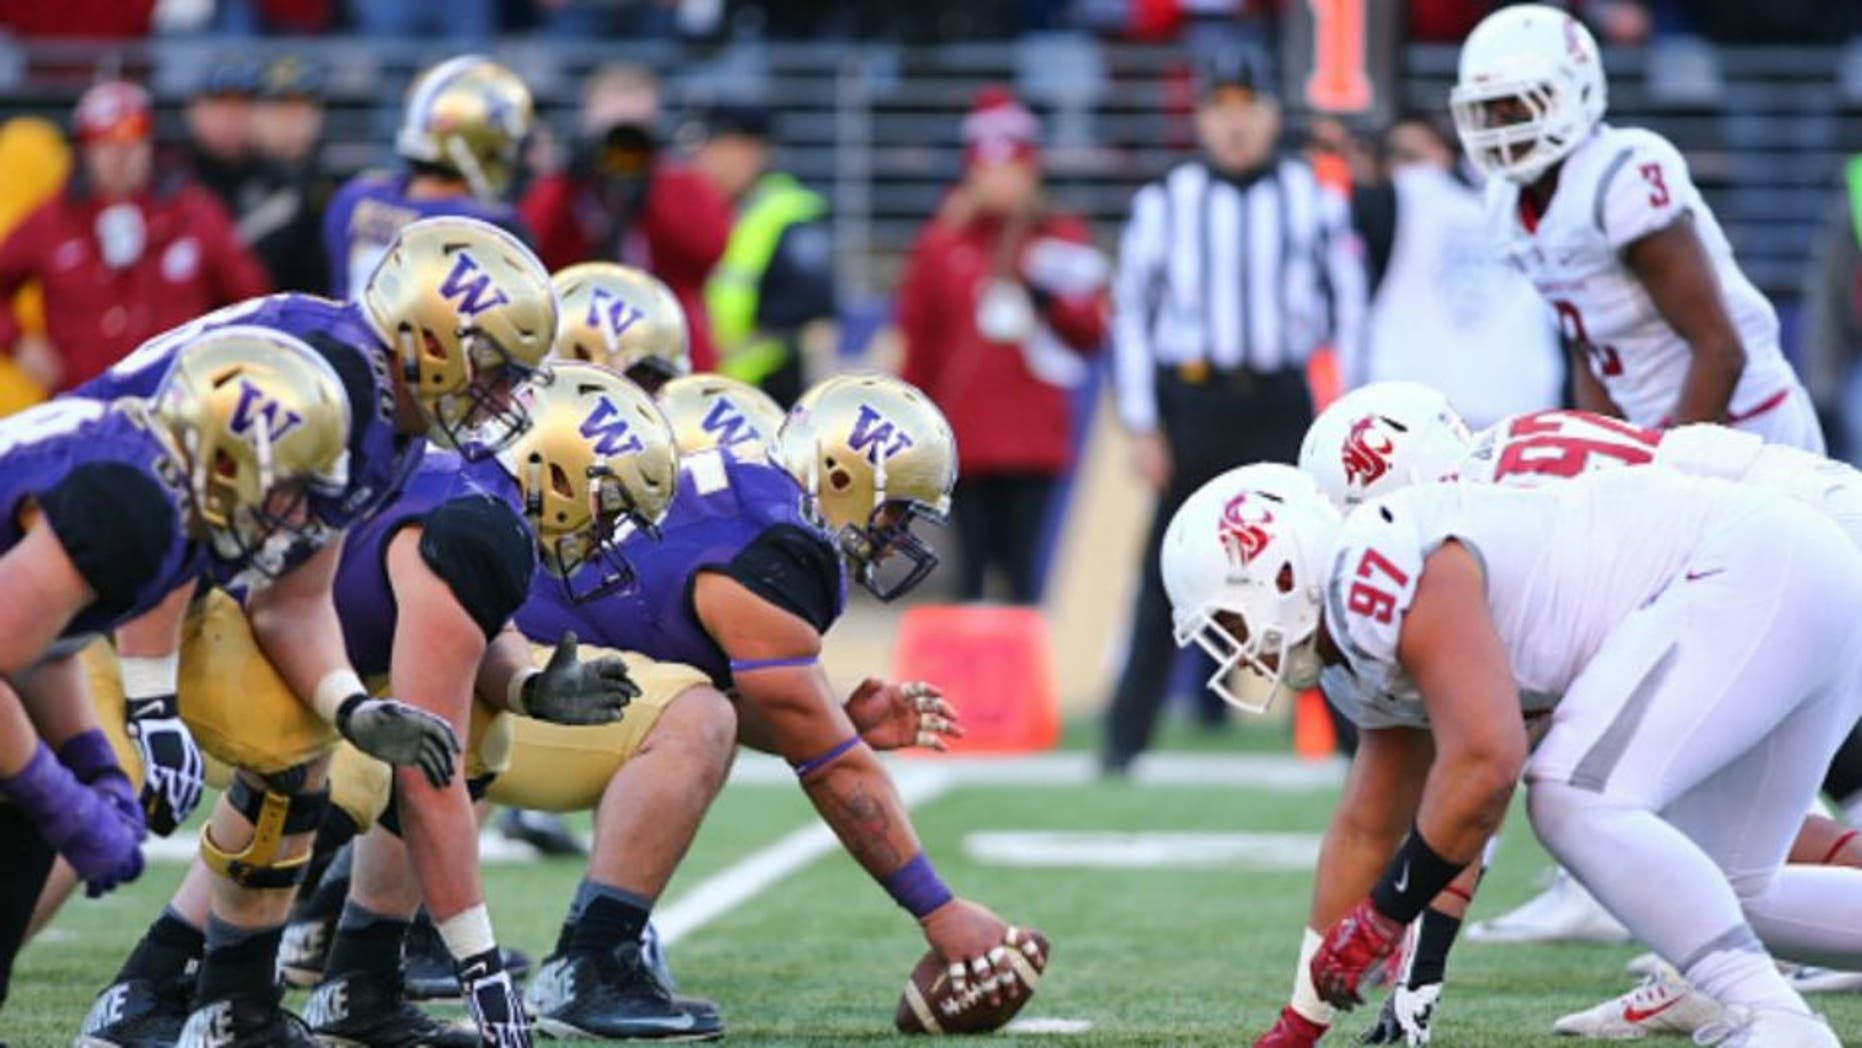 November 27, 2015: Washington against Washington State. Washington defeated Washington State 45-10 at Husky Stadium in Seattle, WA during the 108th annual Apple Cup (Photo by Jesse Beals/Icon Sportswire) (Photo by Jesse Beals/Icon Sportswire/Corbis via Getty Images)